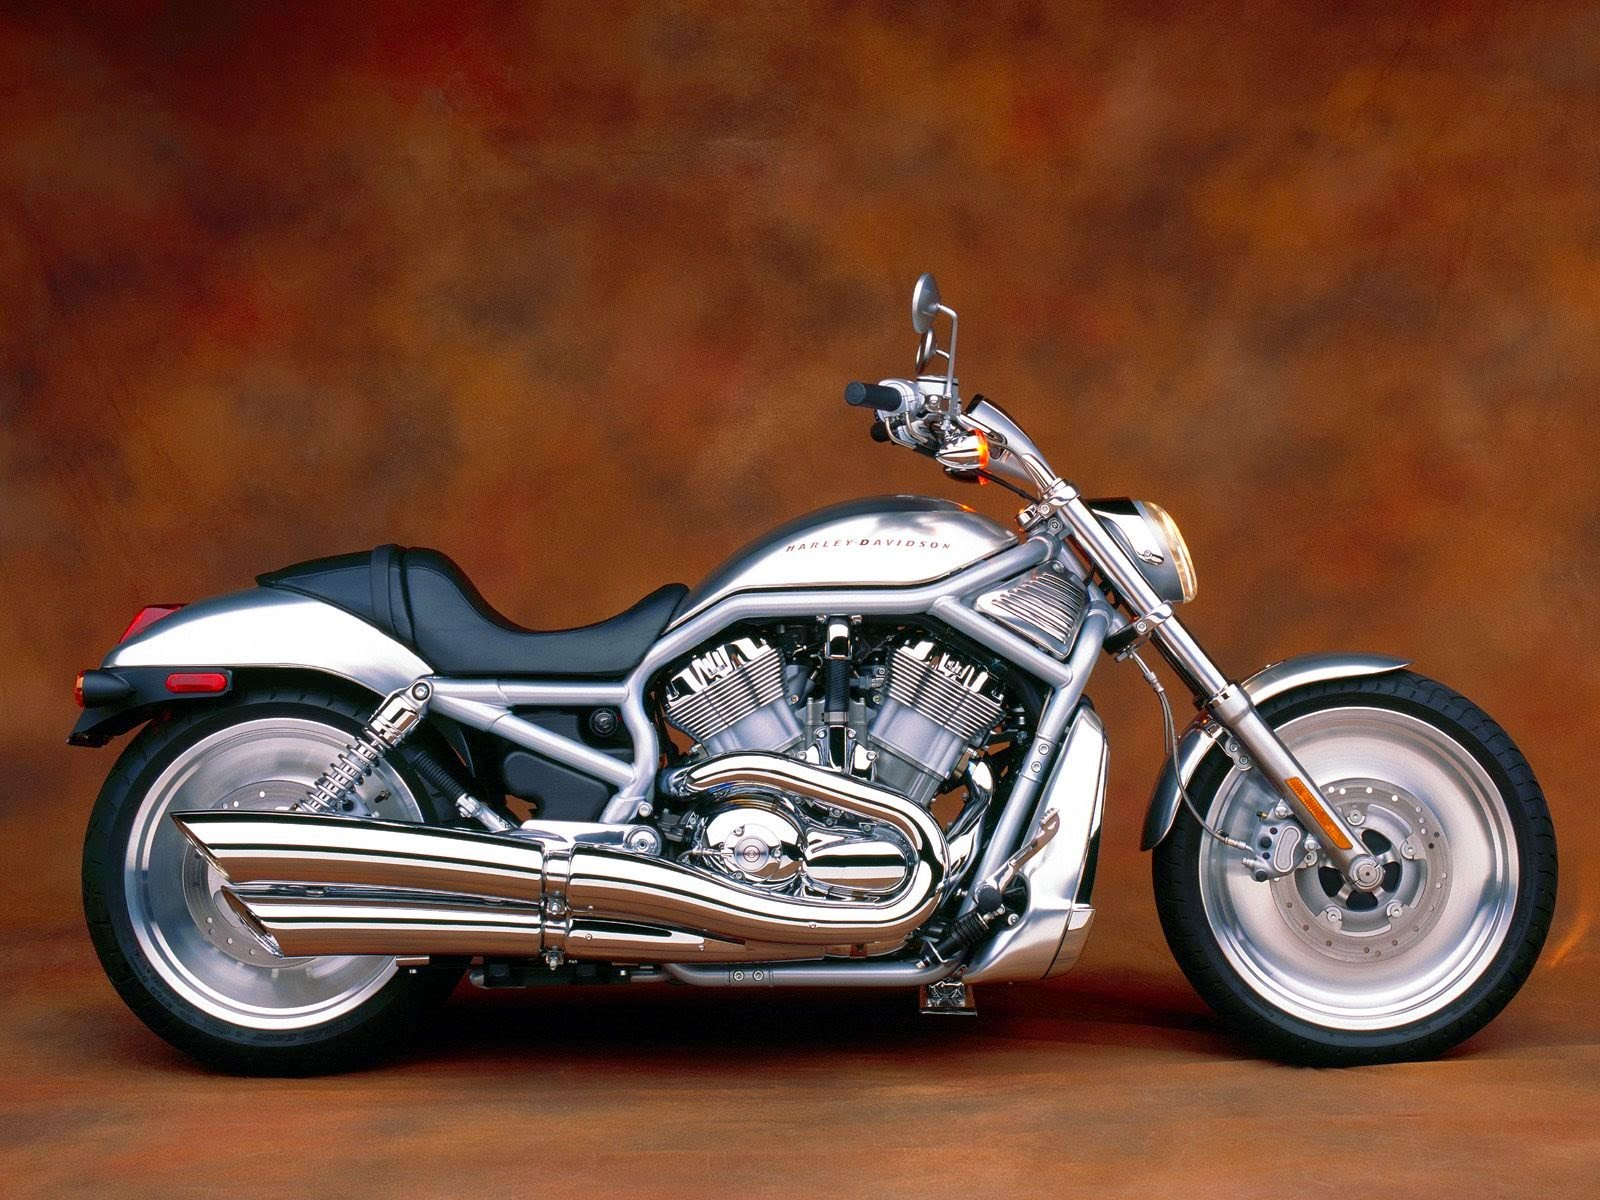 11063 harley v rod harley davidson v rod vrsc owner's manual 2005 2003 v rod wiring diagram at gsmx.co